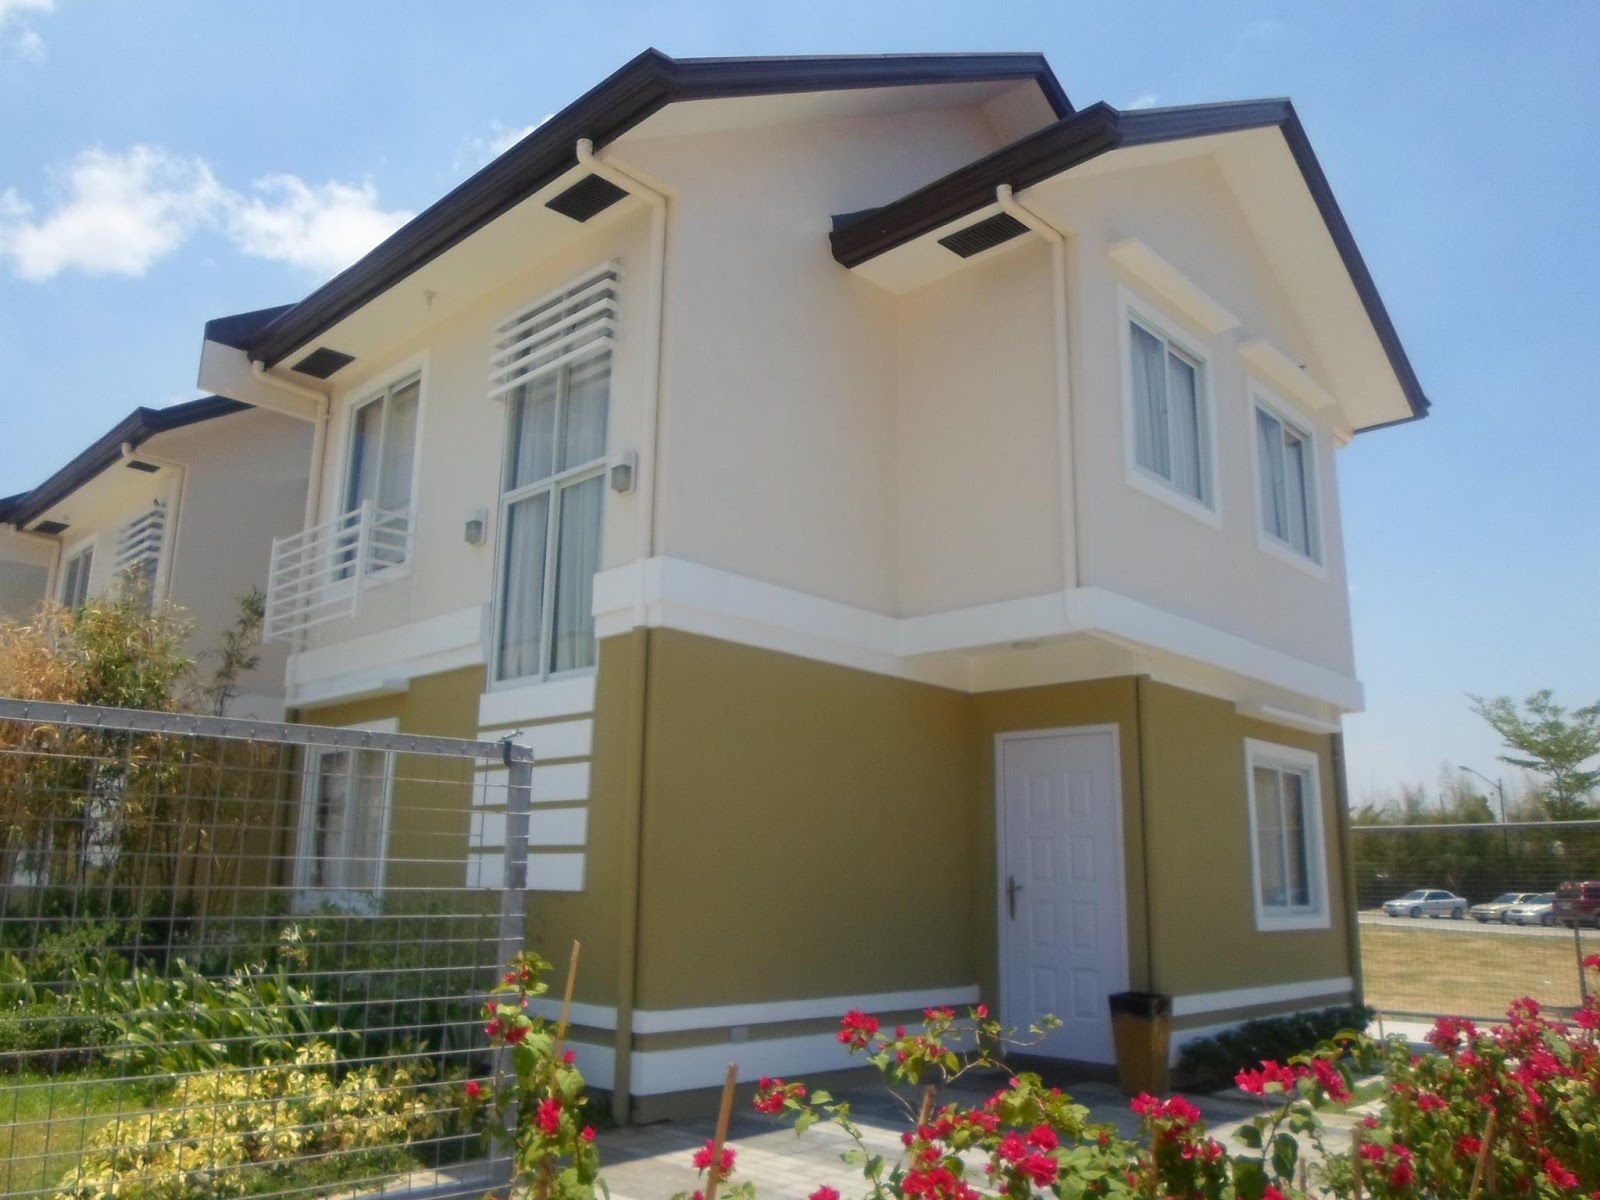 Affordable house design in the philippines lancaster new Afordable house